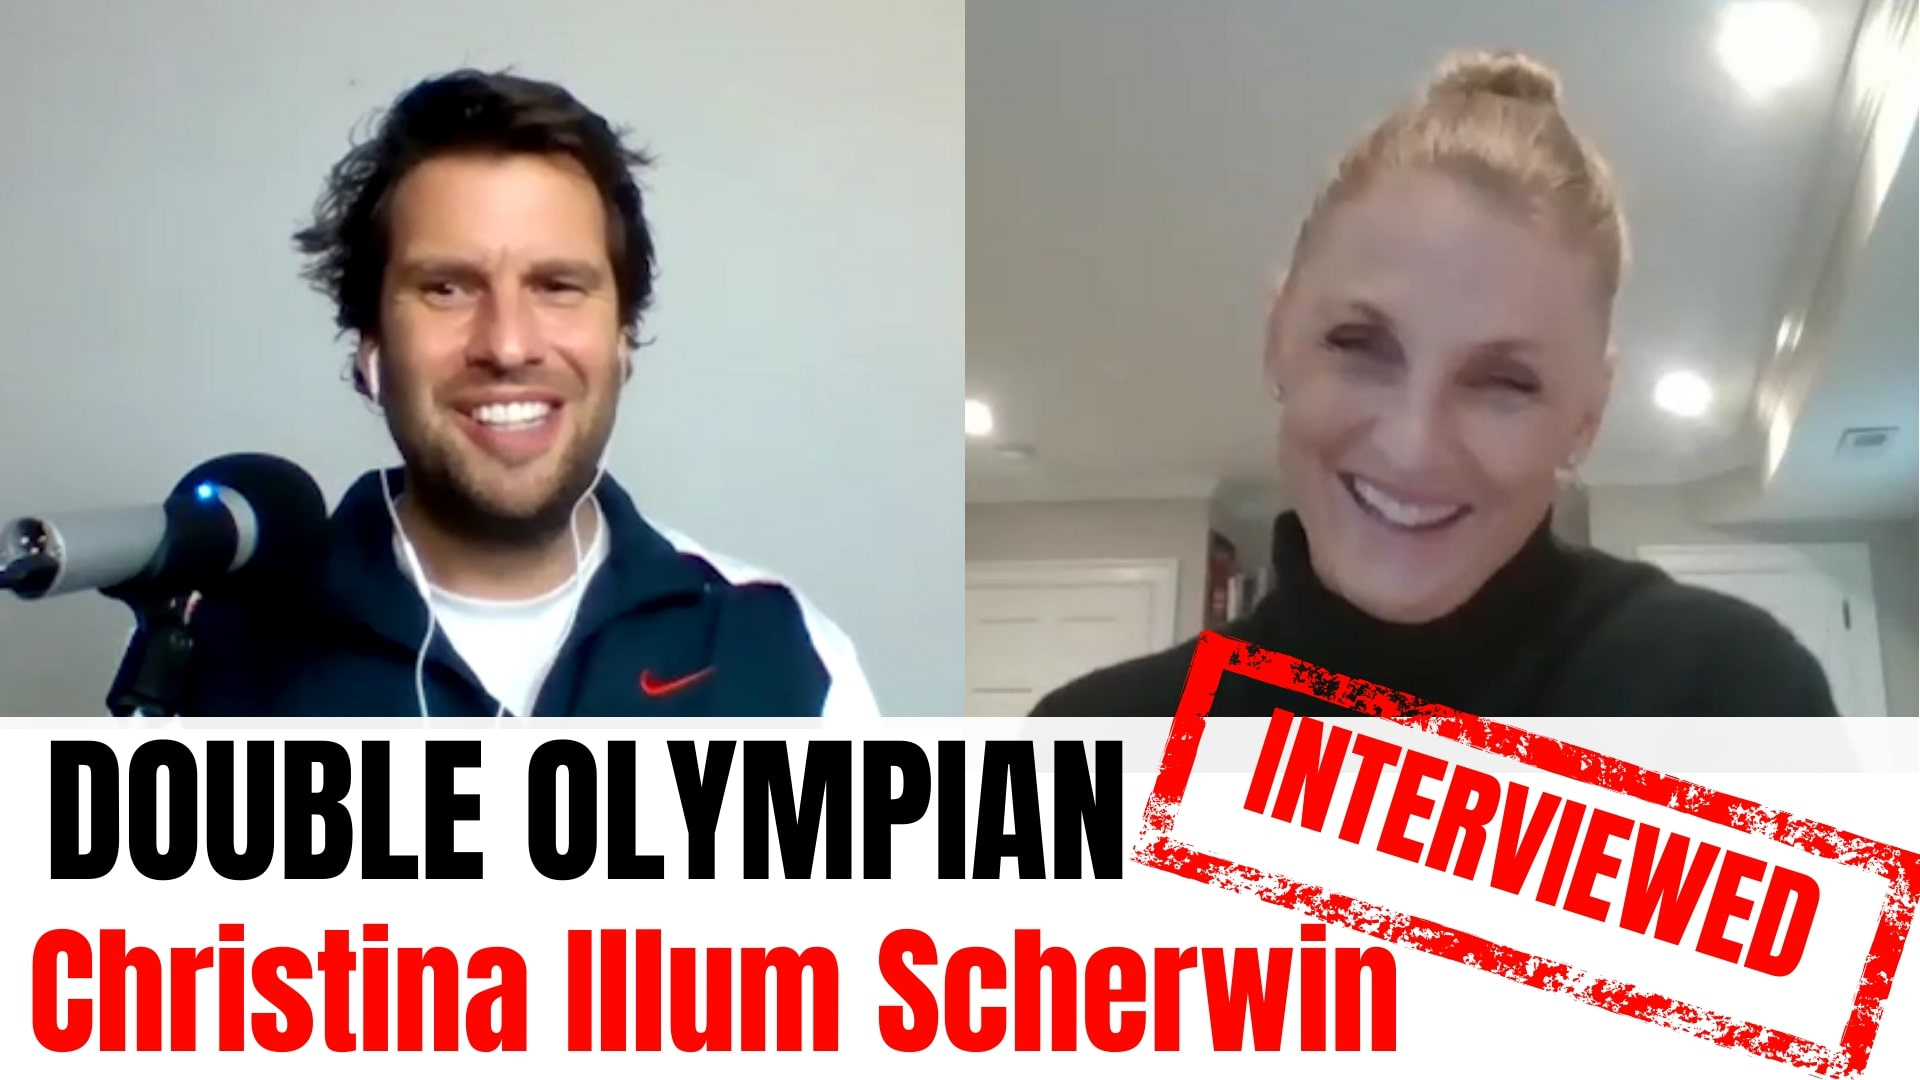 Christina Illum Scherwin Christina Illum Scherwin interview